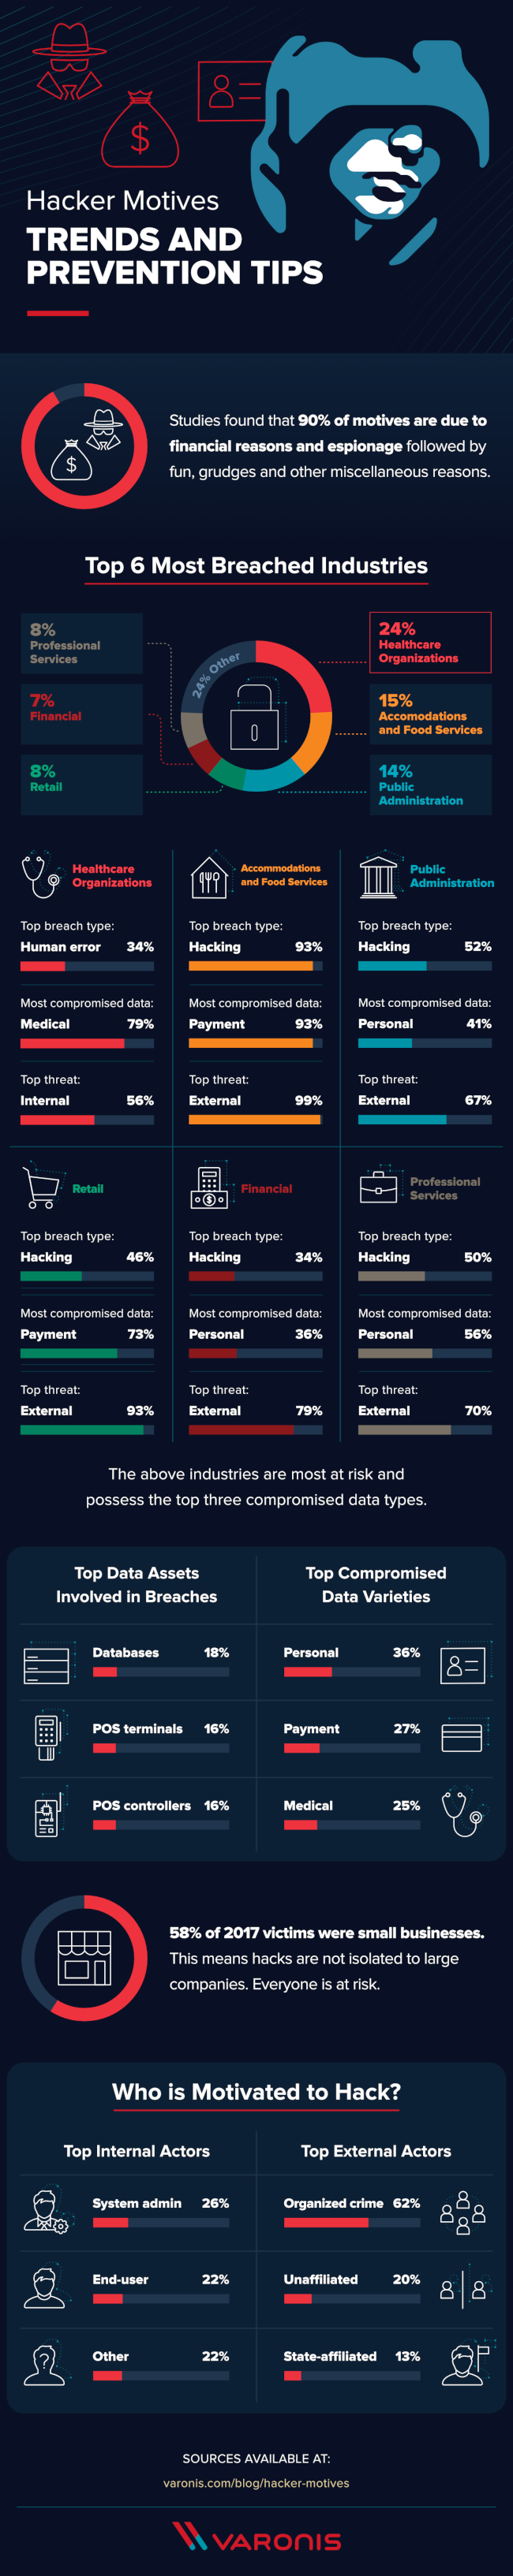 What Motivates Hackers? [Infographic]